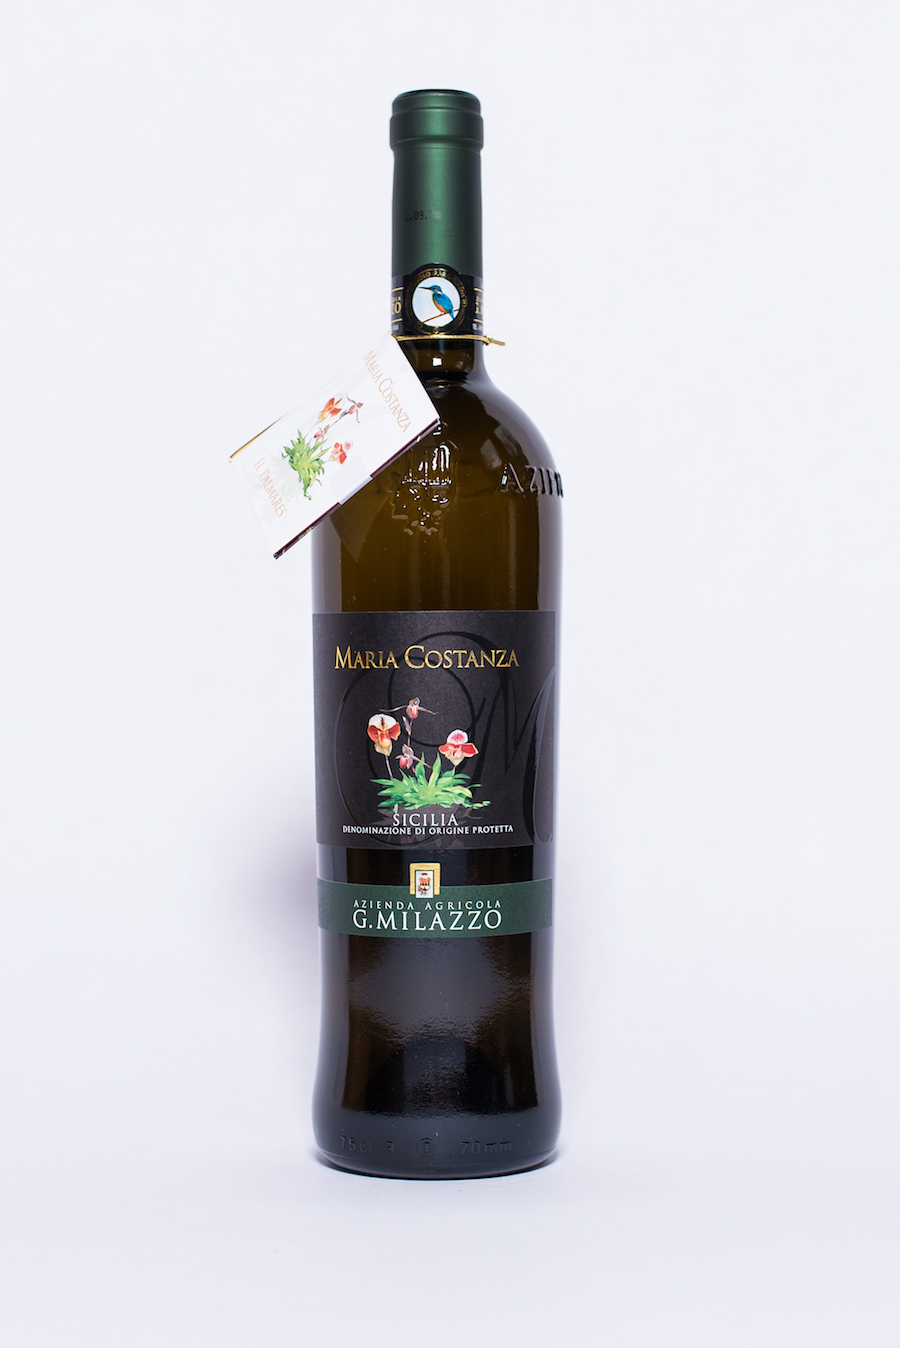 Maria Costanza Bianco 2016    Producer:   Azienda Agricola G. Milazzo    Region:  Sicily  Grapes:  Inzolia, Chardonnay  Nose:  Fresh floral aromas of orange blossom with notes of pineapple + banana, spicy accents white pepper  Taste:  Full, beautifully warm and mineral, well balanced with a very pleasant mouth feel